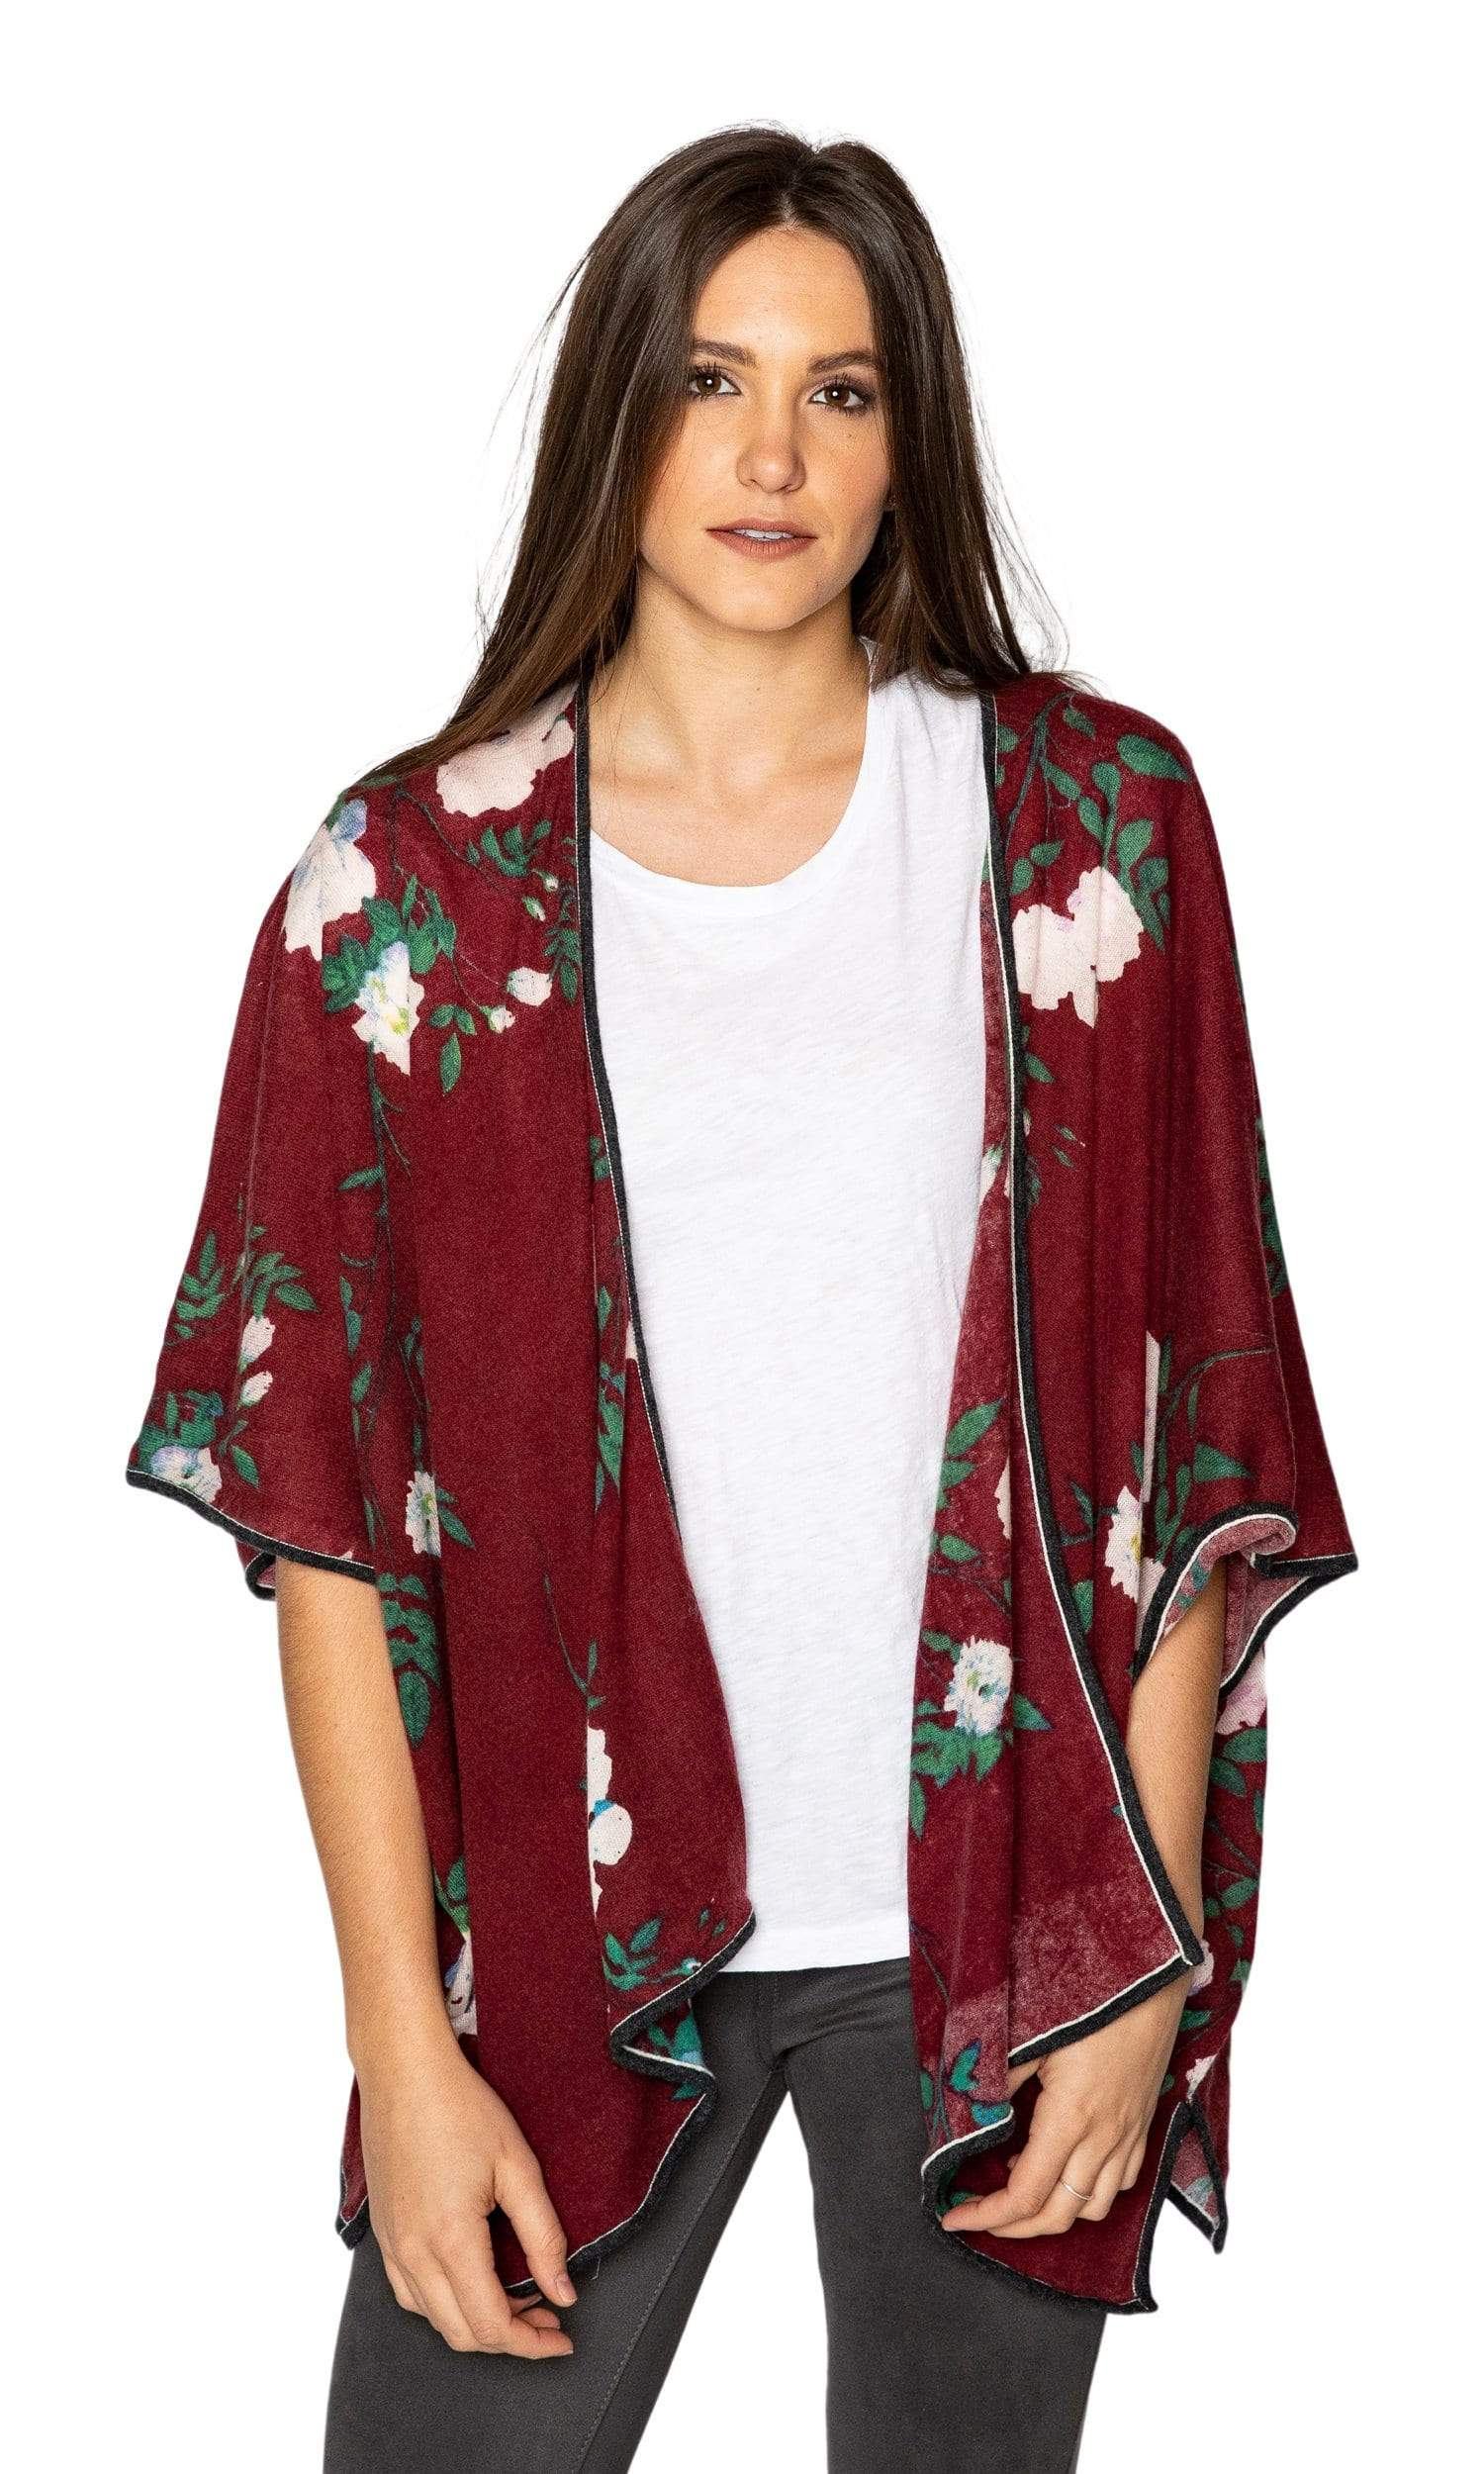 Knitwit Cashmere Kimono Cardigan - Belle Floral